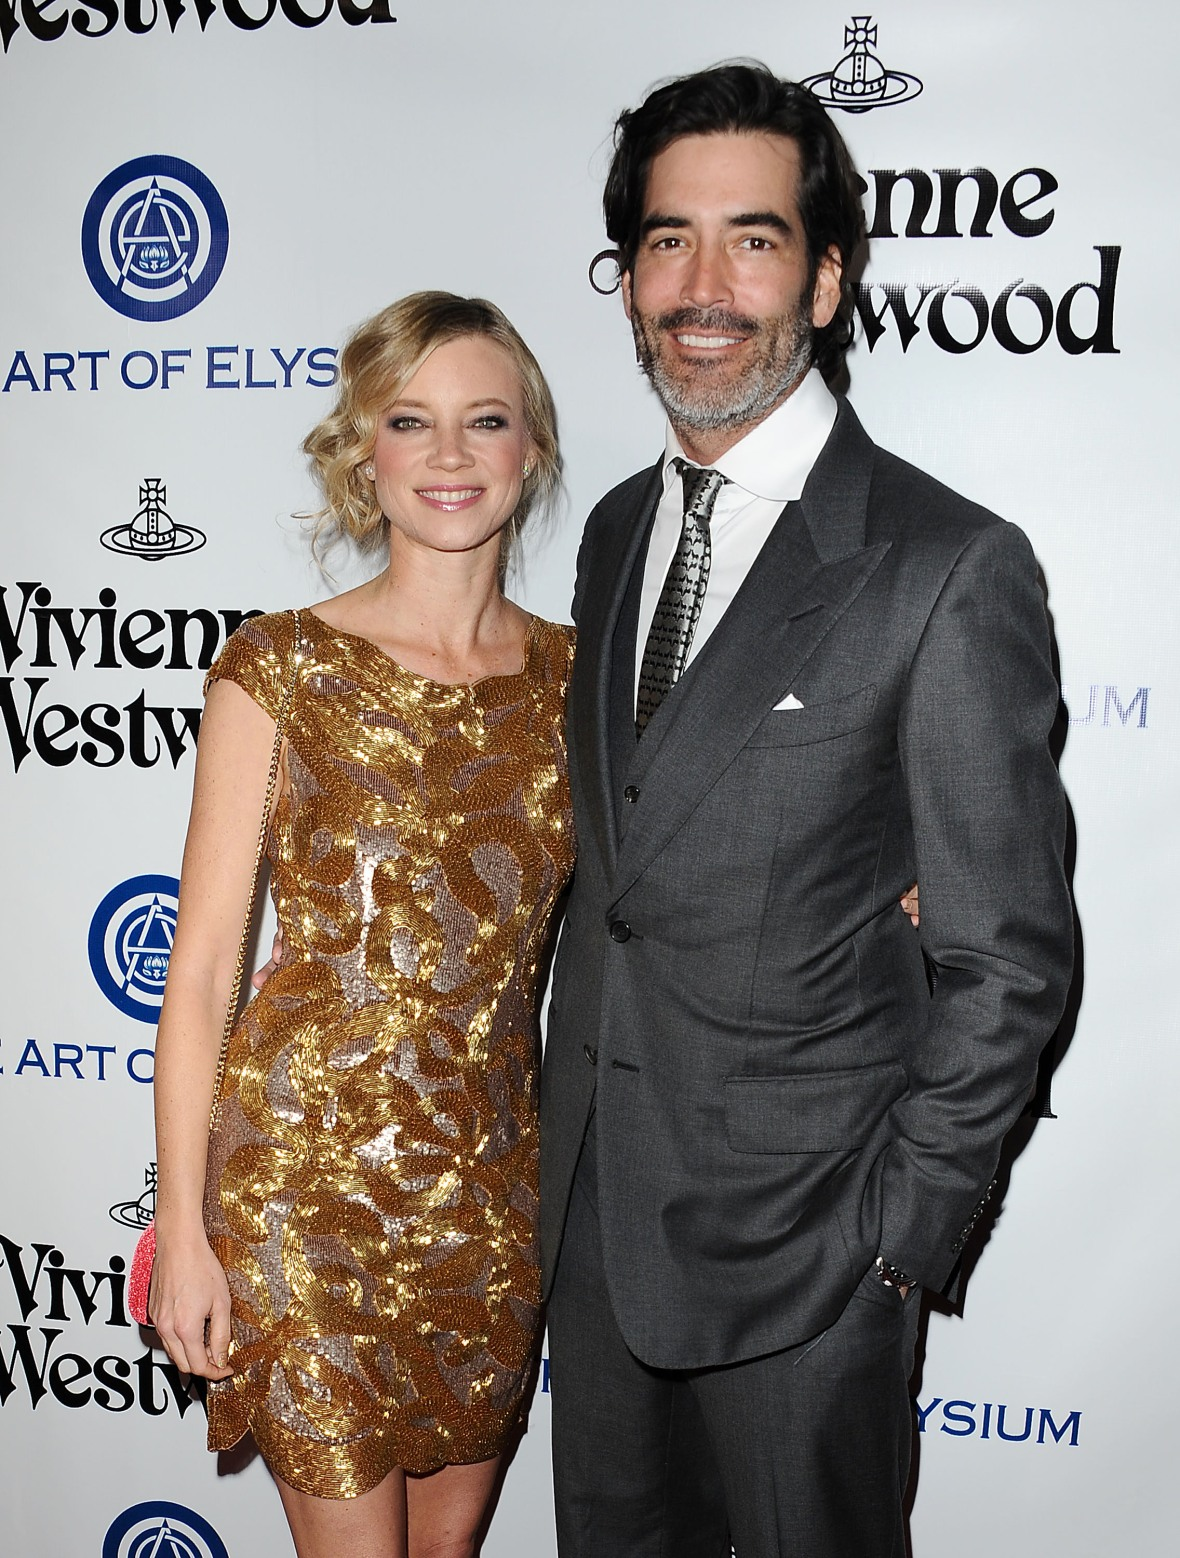 amy smart carter oosterhouse getty images